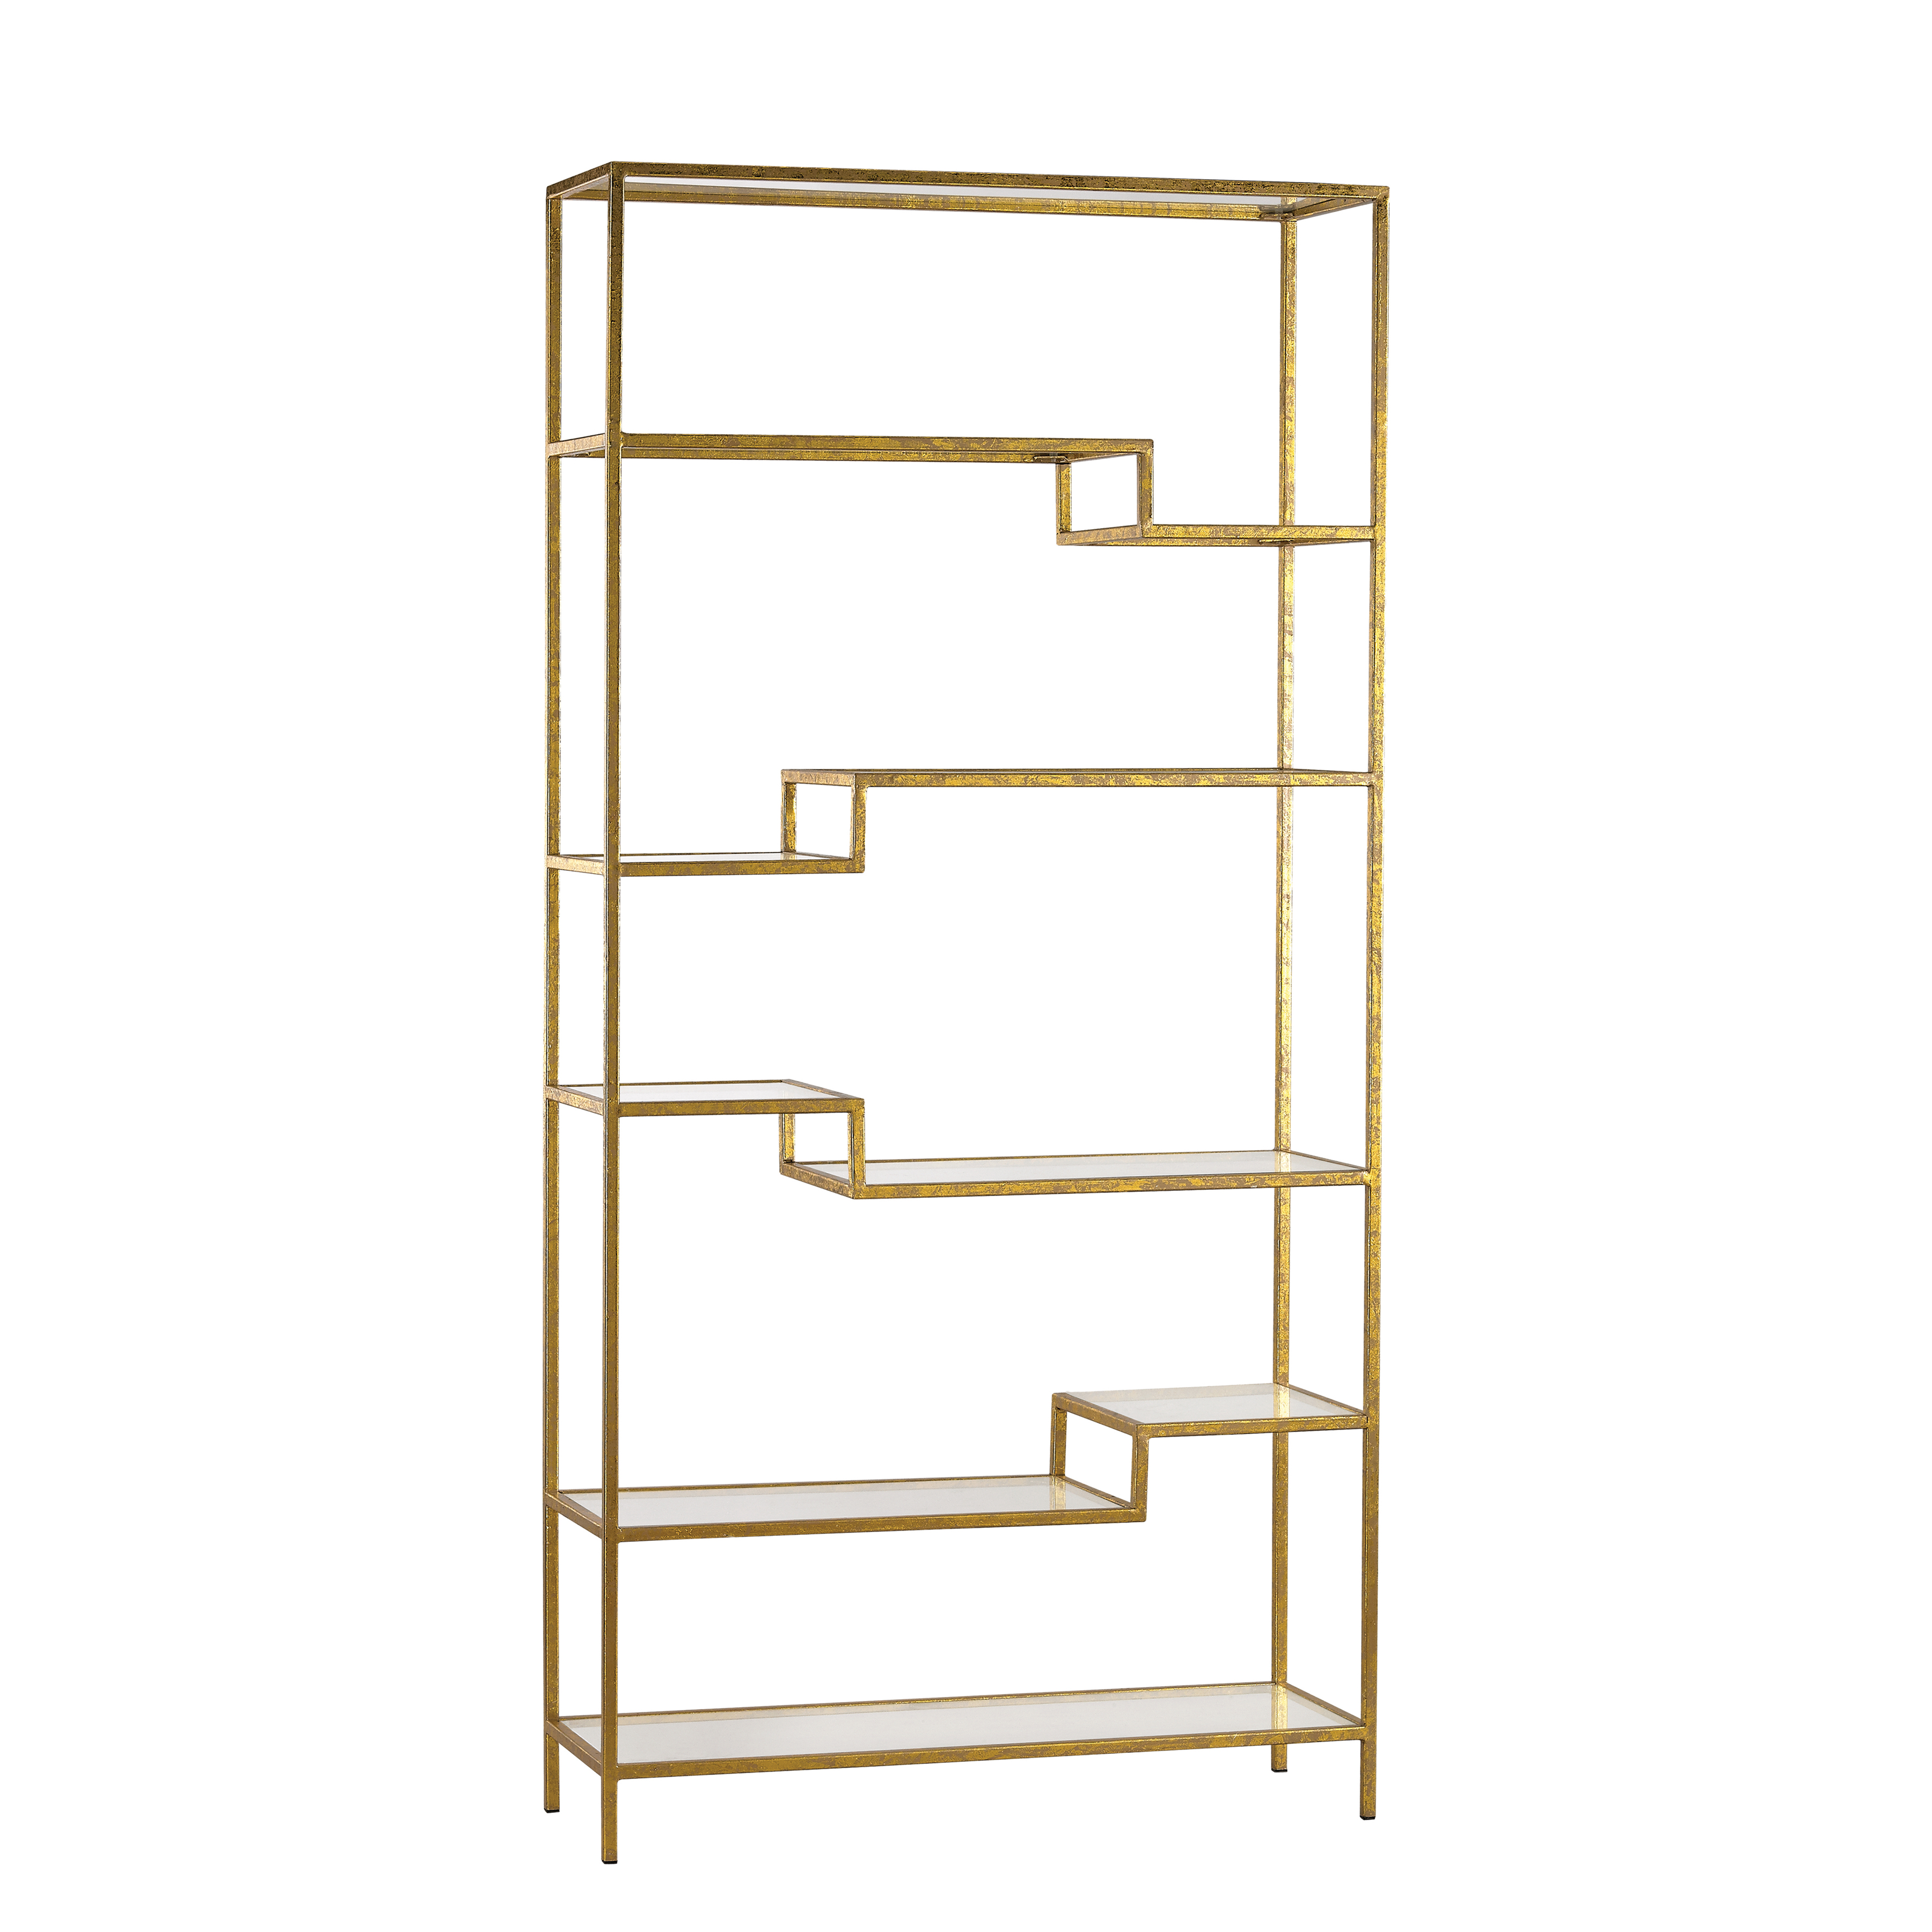 Vanguard Shelving Unit in Gold with Gold/Clear Glass 351-10209 | ELK Home